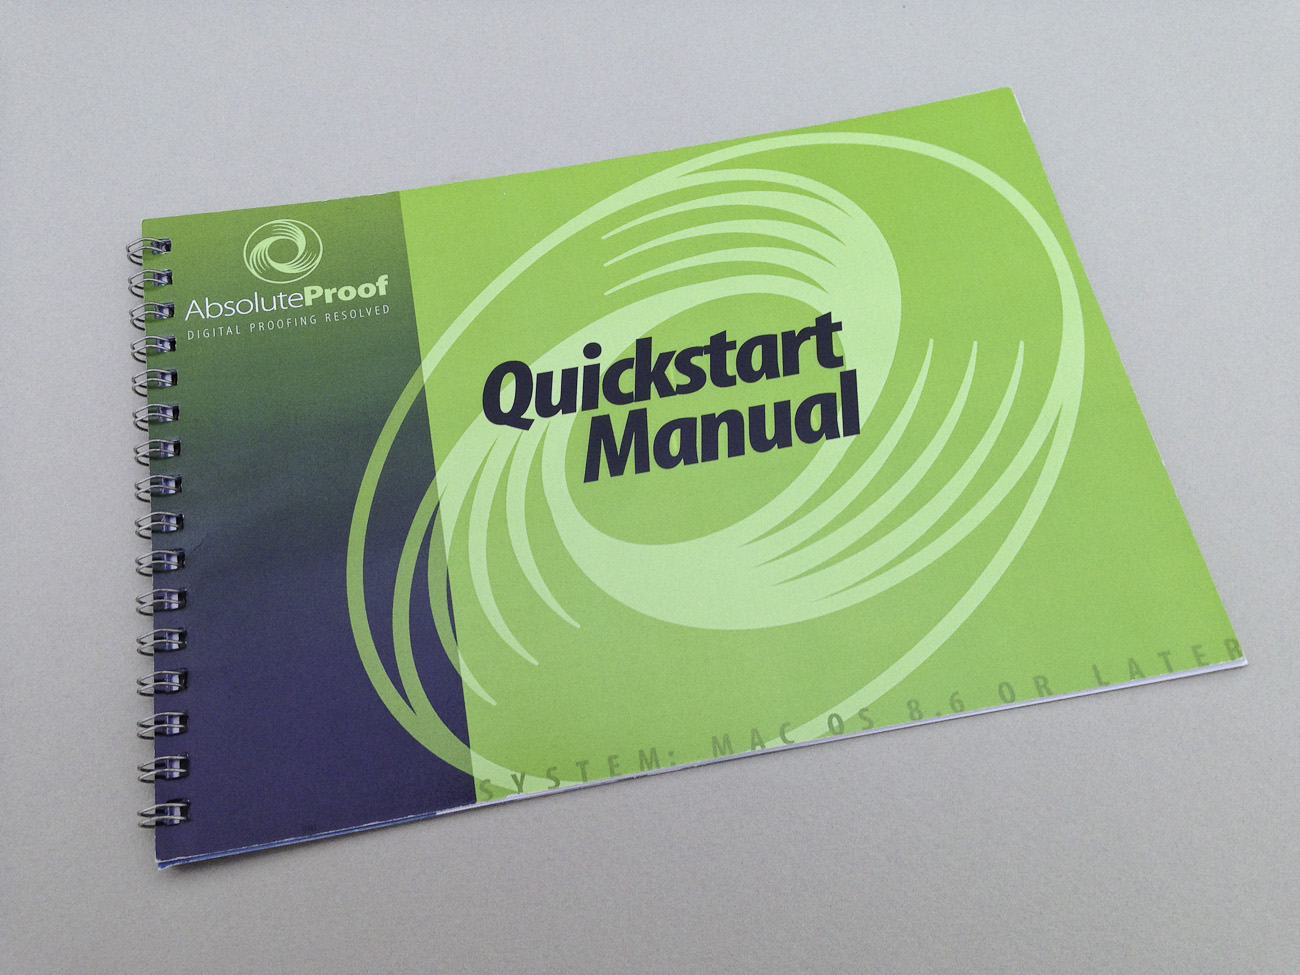 AbsoluteProof Quickstart Manual, colour, A5 landscape, front cover.